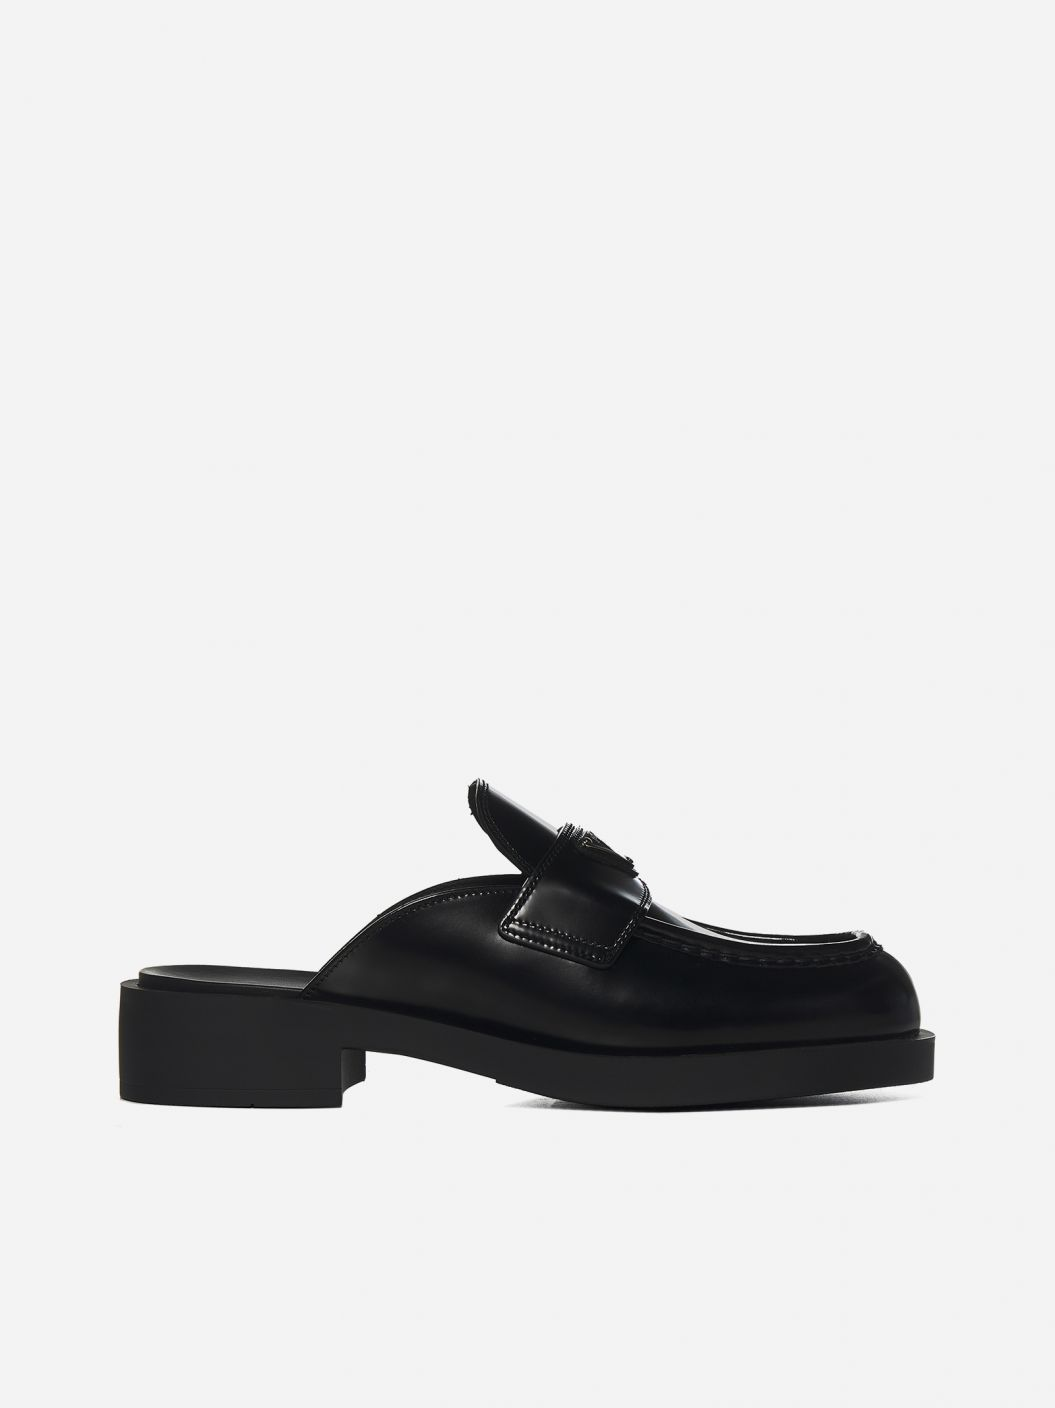 Loafers-style leather mules